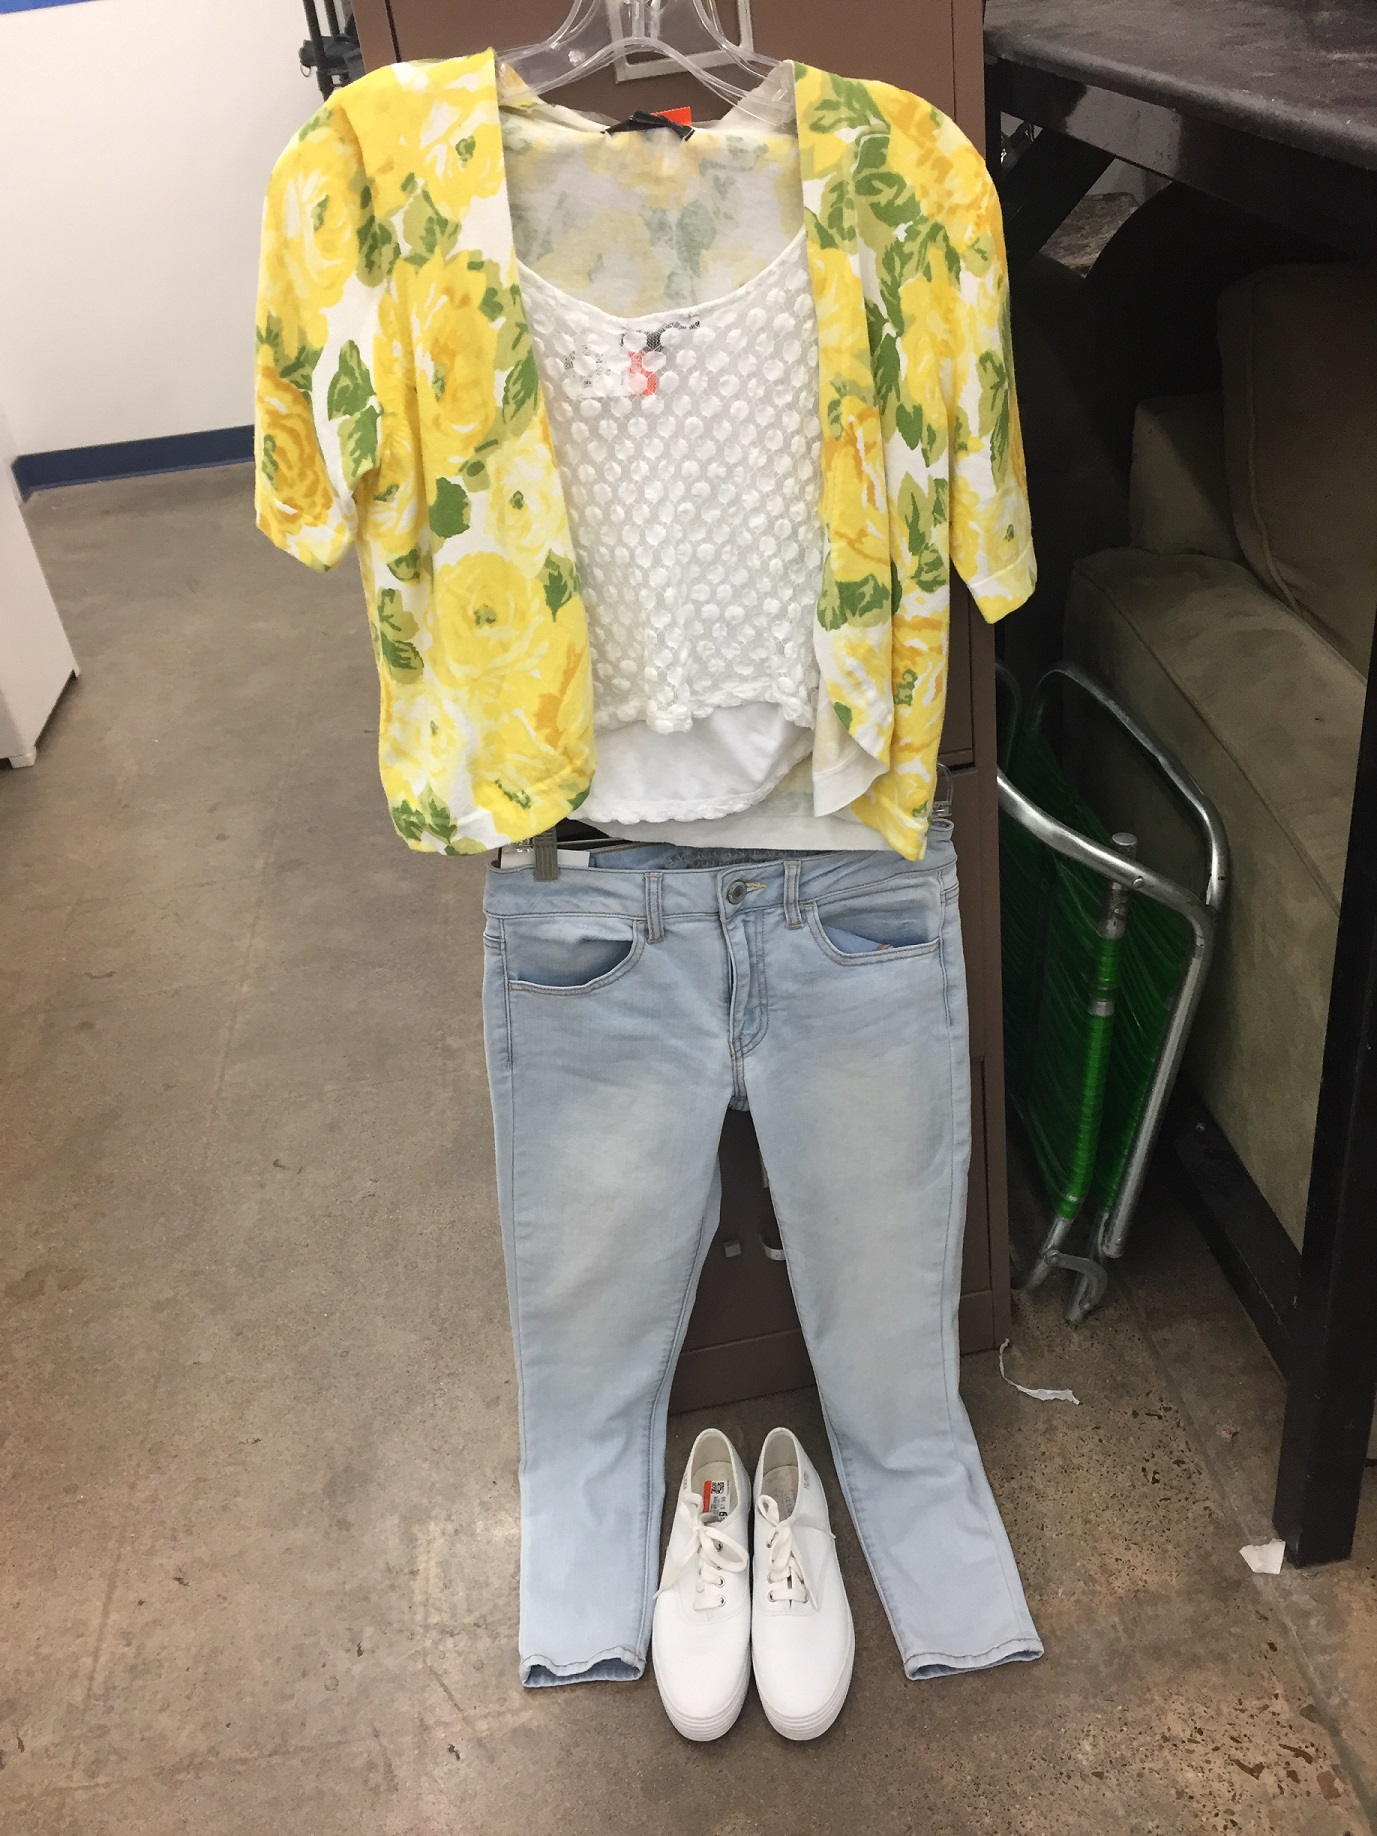 This+is+a+brighter+outfit%2C+and+I+love+the+floral+print.+The+outer+layer+costs+%244.99.+the+shirt+cost+%244.99%2C+the+pants+cost+%2412.99%2C+and+the+shoes+cost+%247.99%2C+bringing+the+whole+outfit+to+%2430.96.